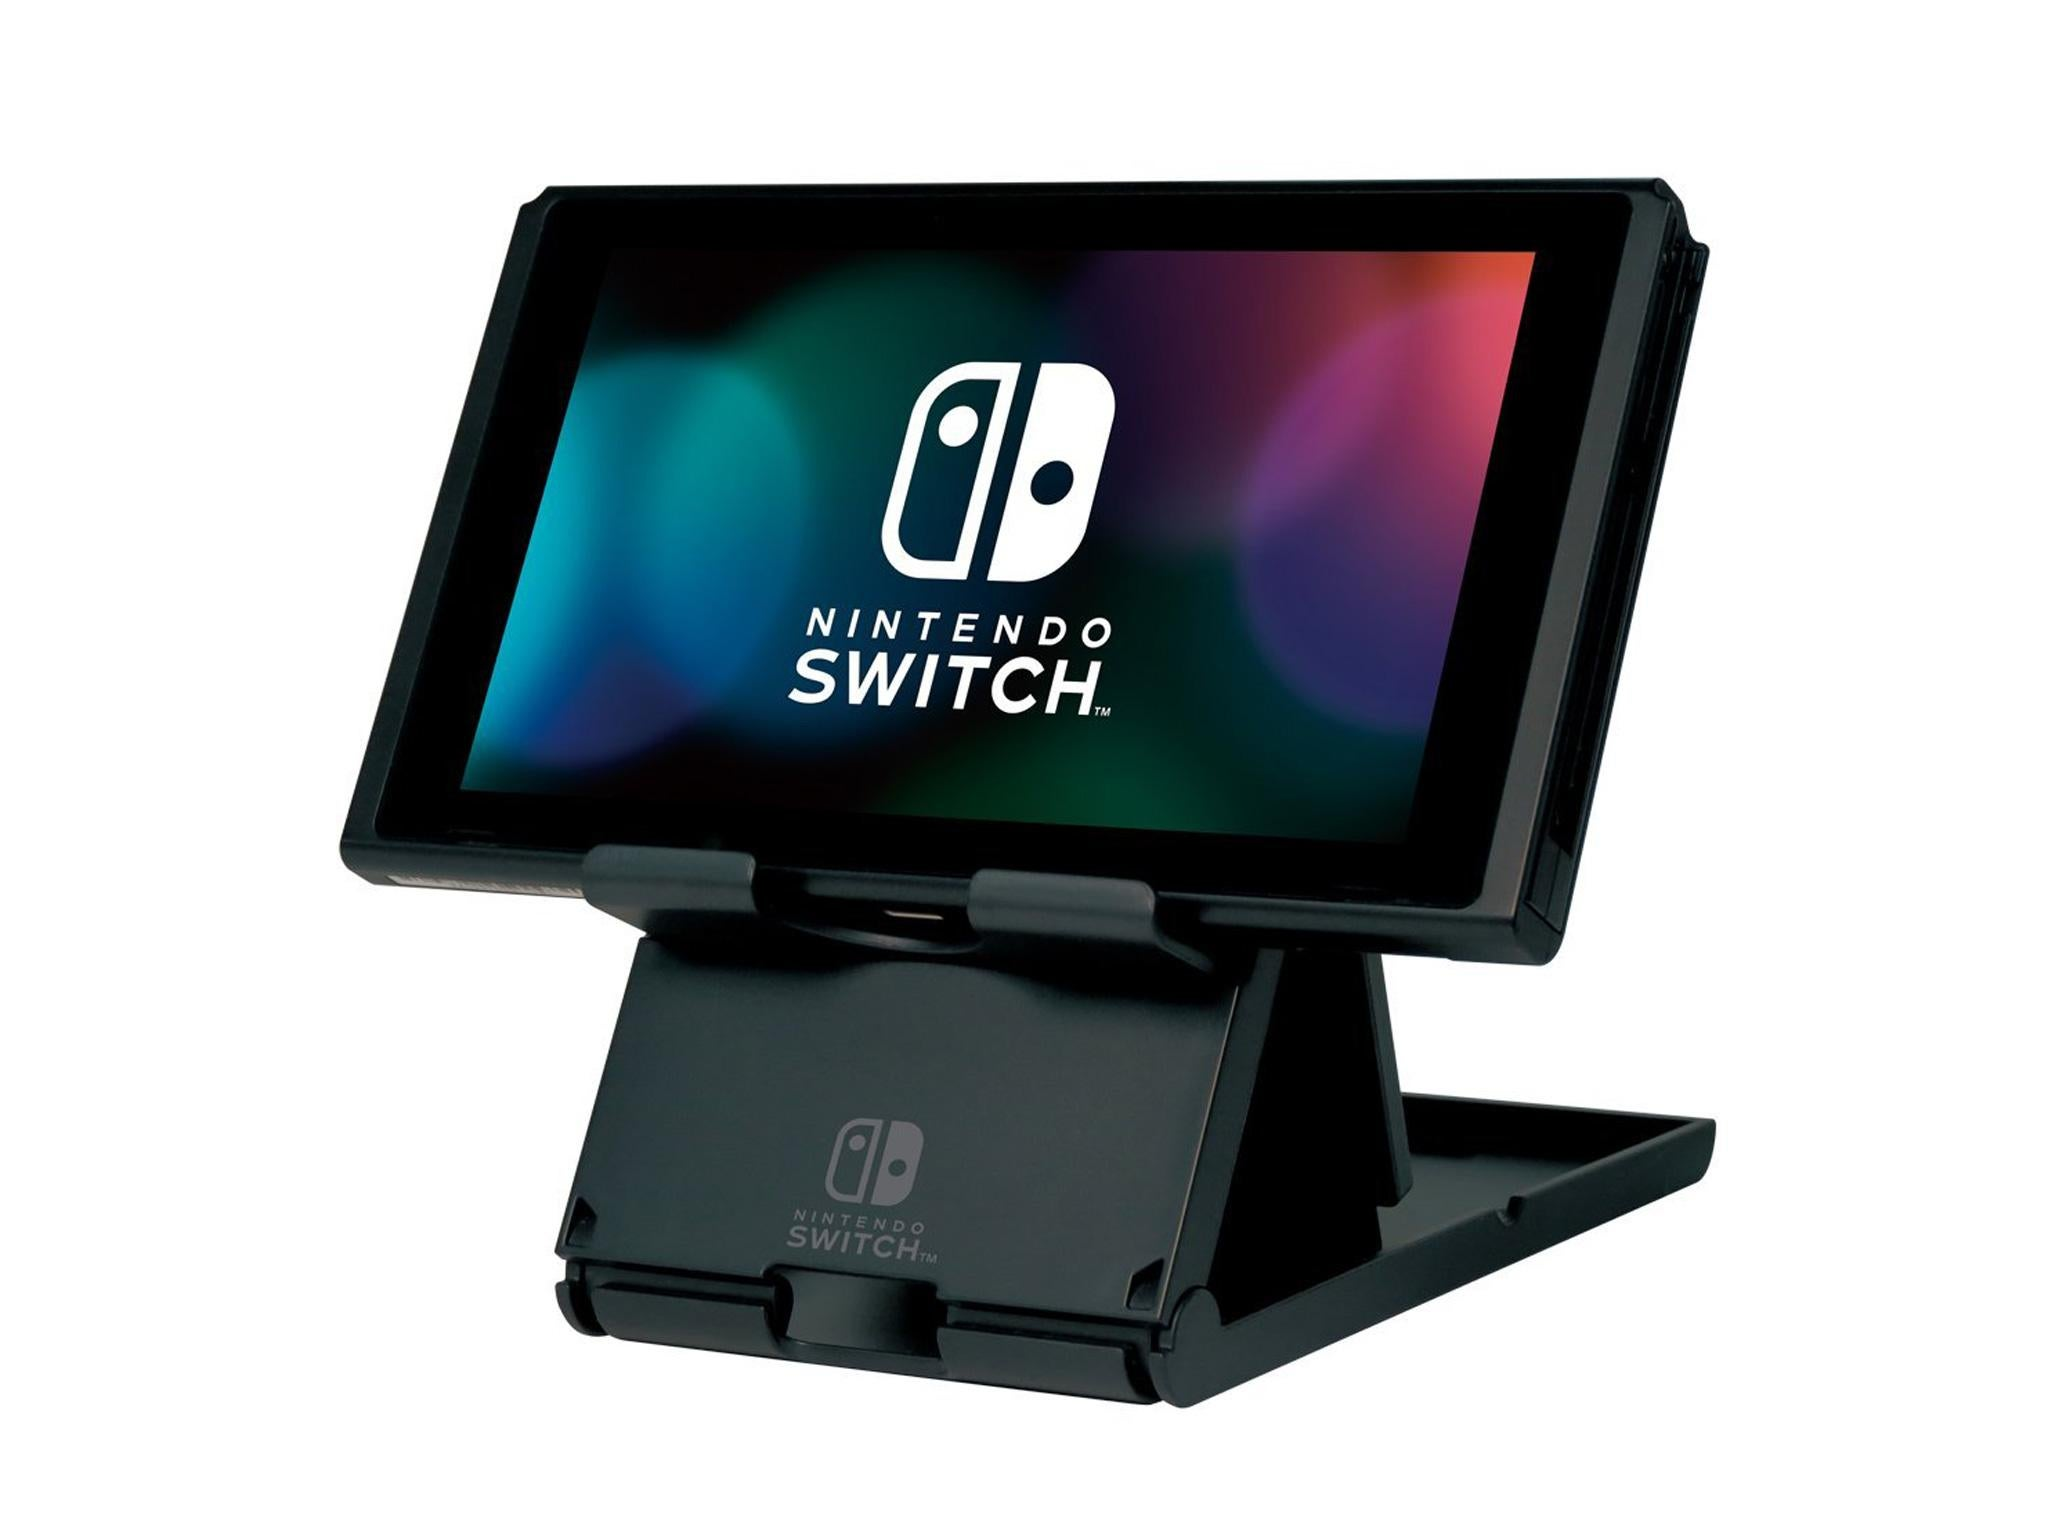 10 Best Nintendo Switch Accessories The Independent 8 Way Joystick Hori Compact Playstand Amazon